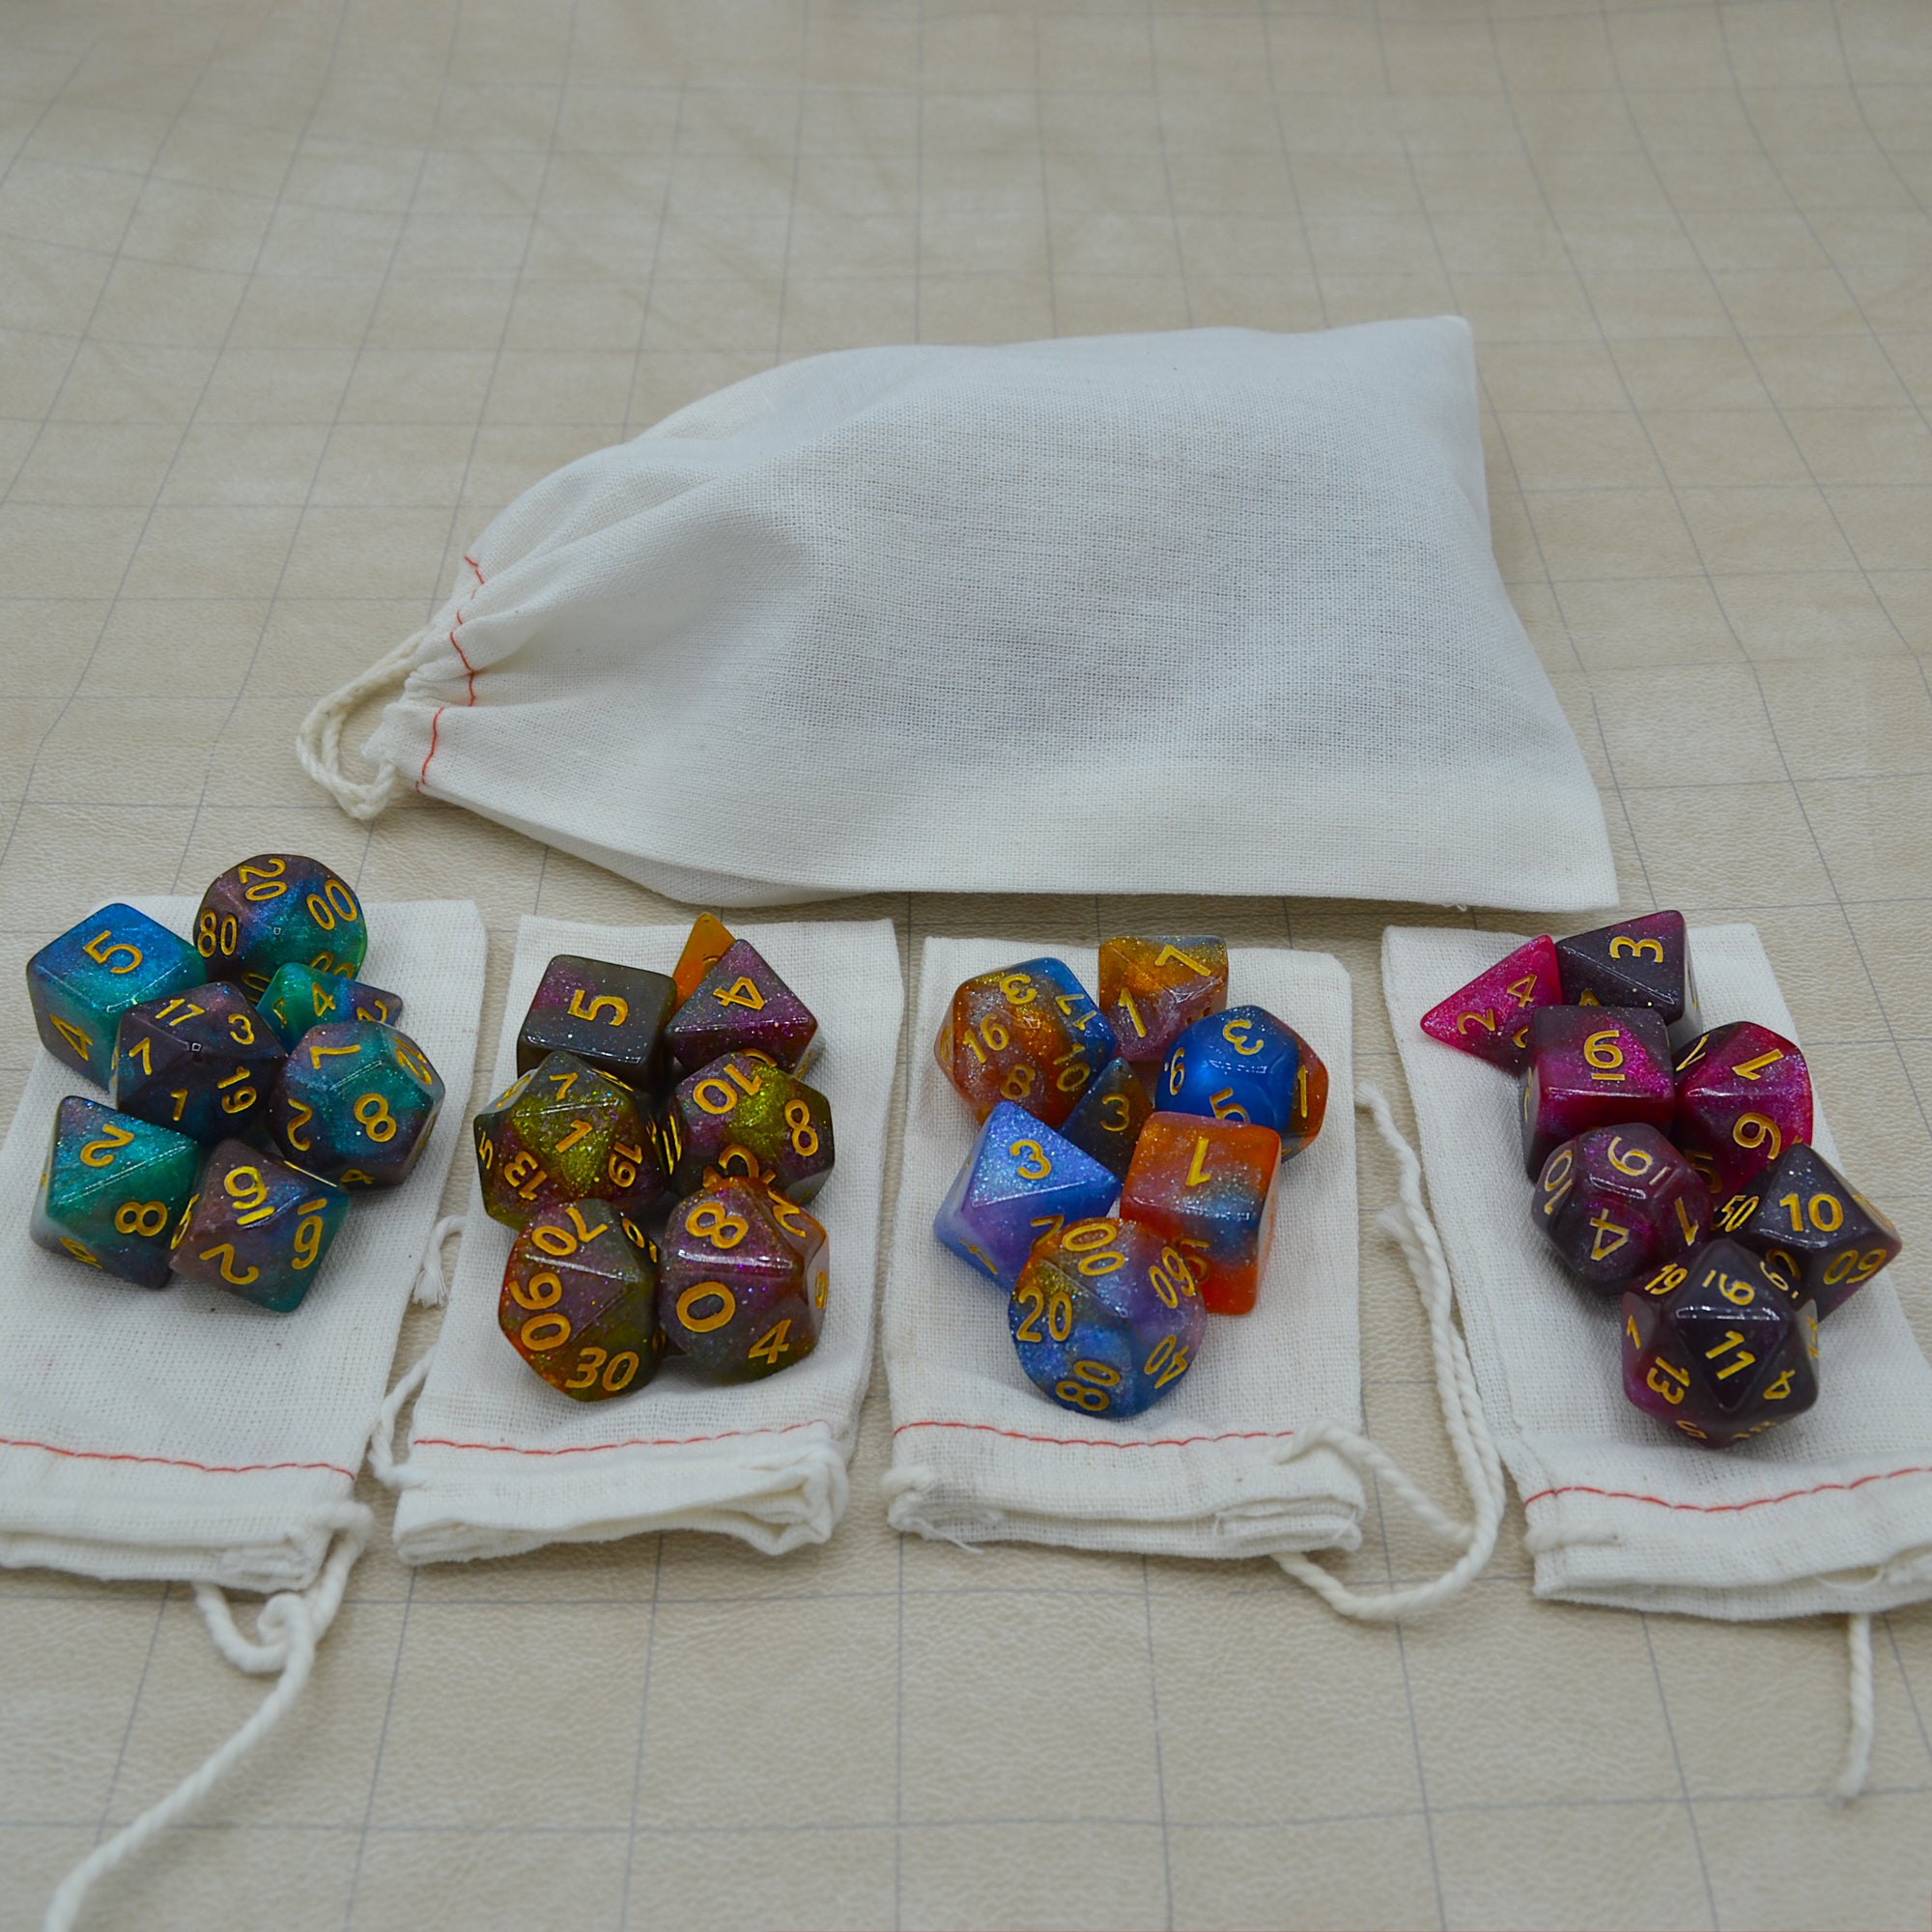 Four Sets of Galaxy Glitter Dice - 7 Dice Per Set - 28 Dice Total - Wildbot3d